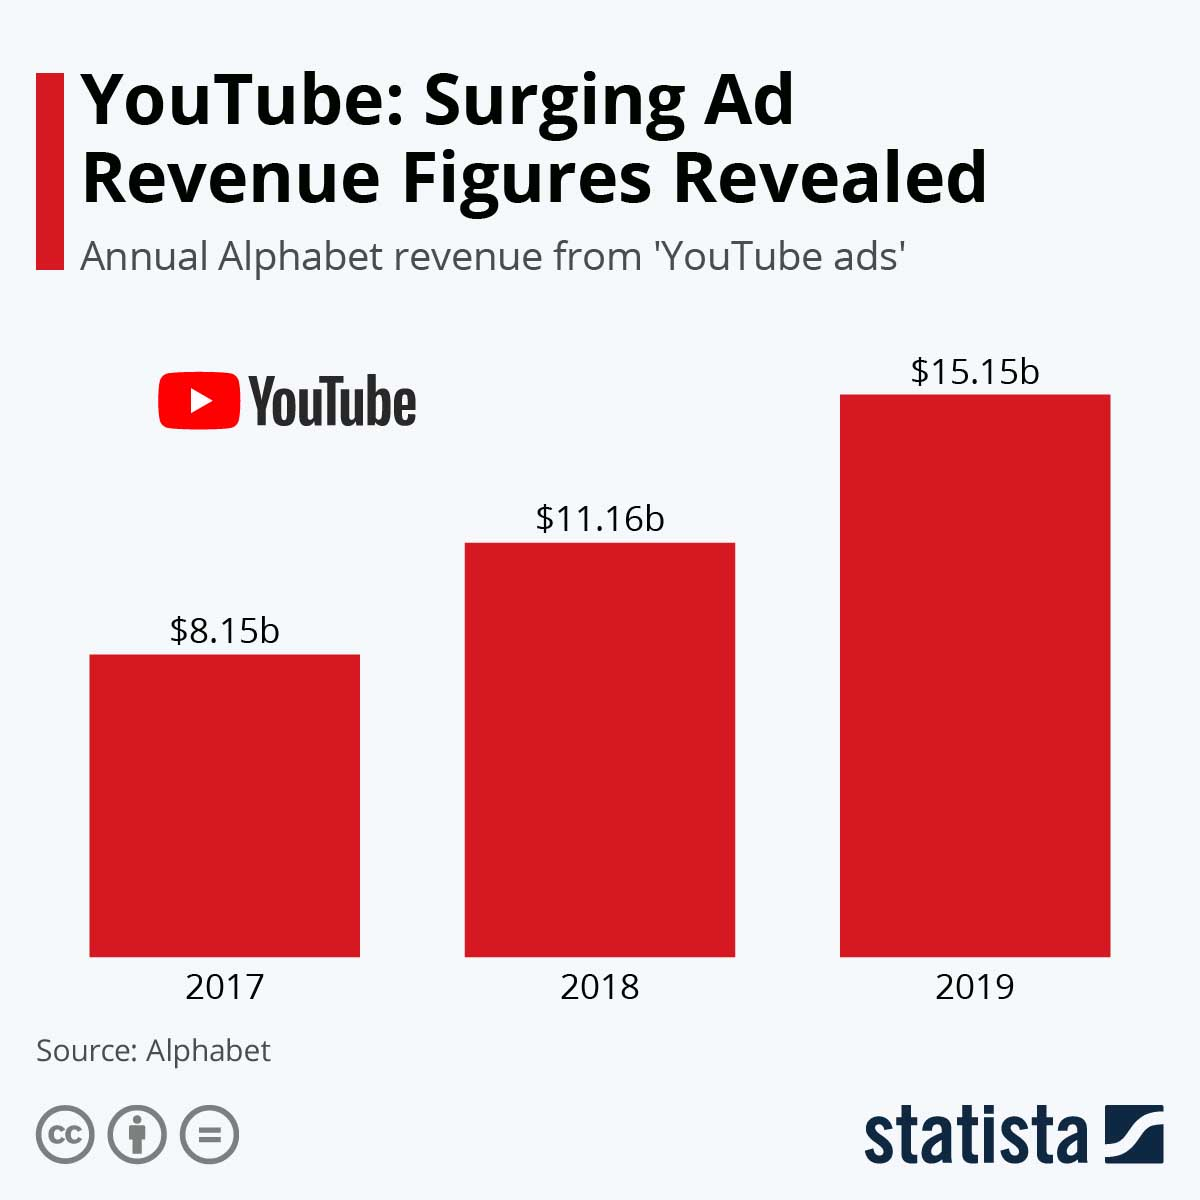 YouTube video ads — YouTube revenue